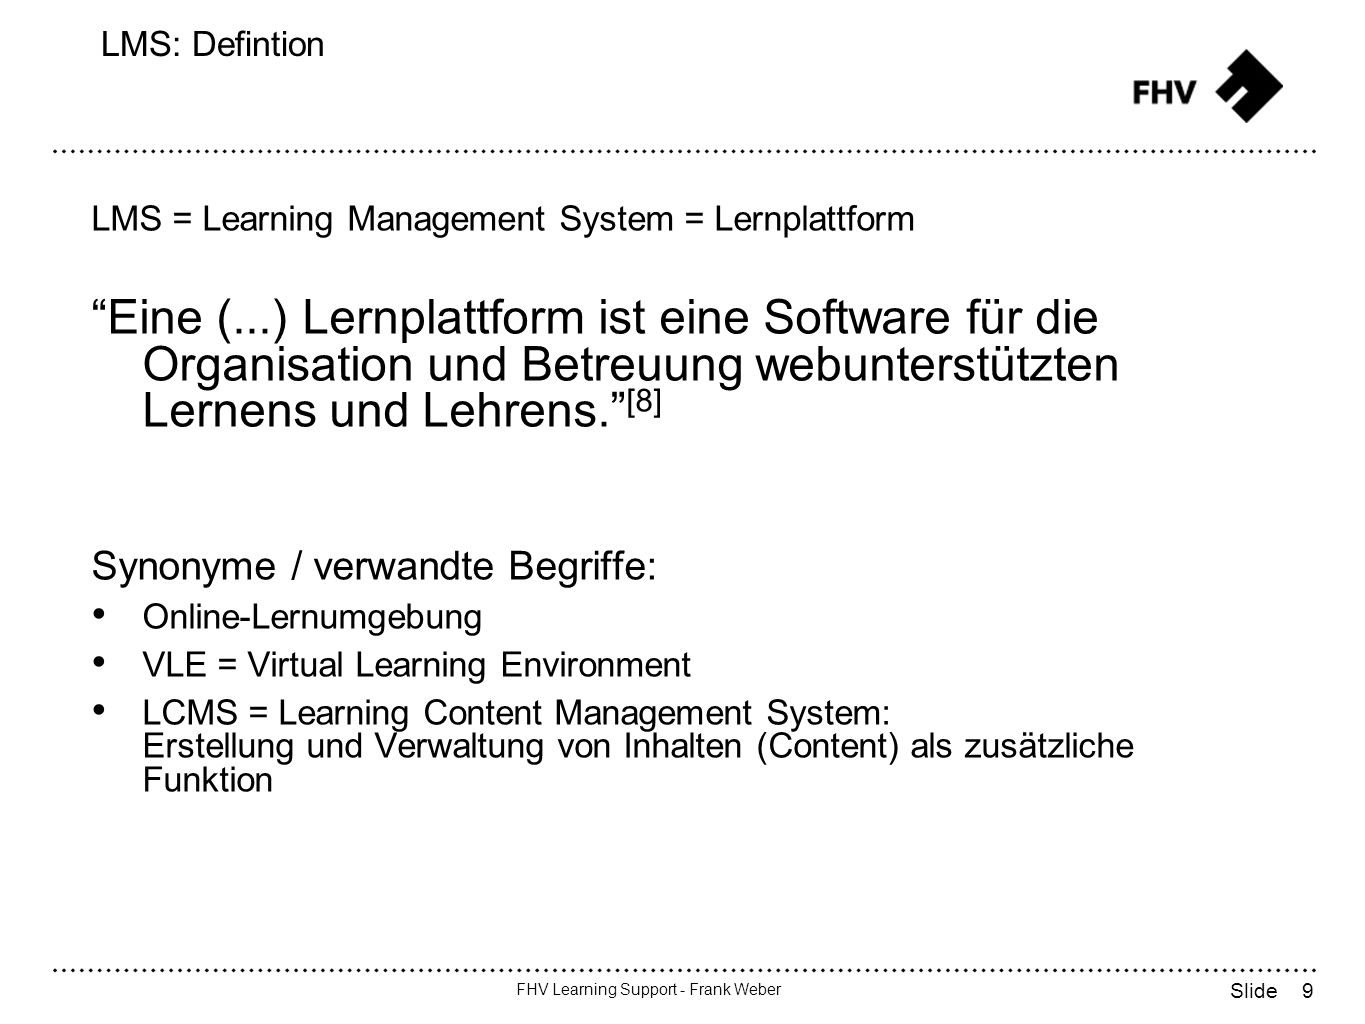 9 FHV Learning Support - Frank Weber Slide LMS: Defintion LMS = Learning Management System = Lernplattform Eine (...) Lernplattform ist eine Software für die Organisation und Betreuung webunterstützten Lernens und Lehrens.